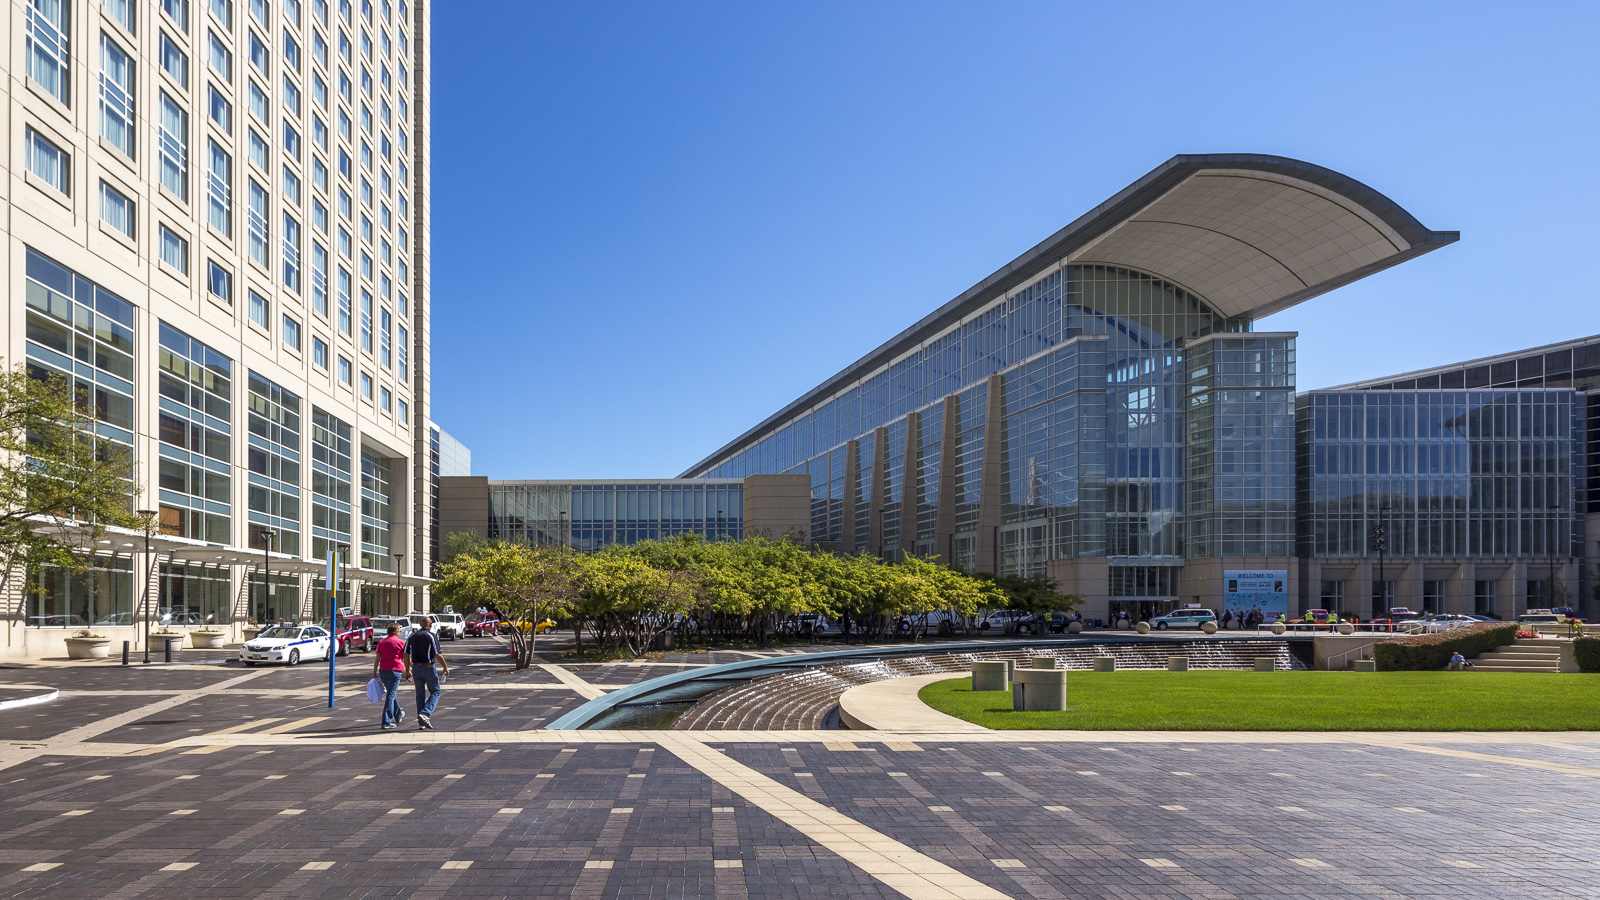 mccormick place convention center chicago square process panoramio expo google marty